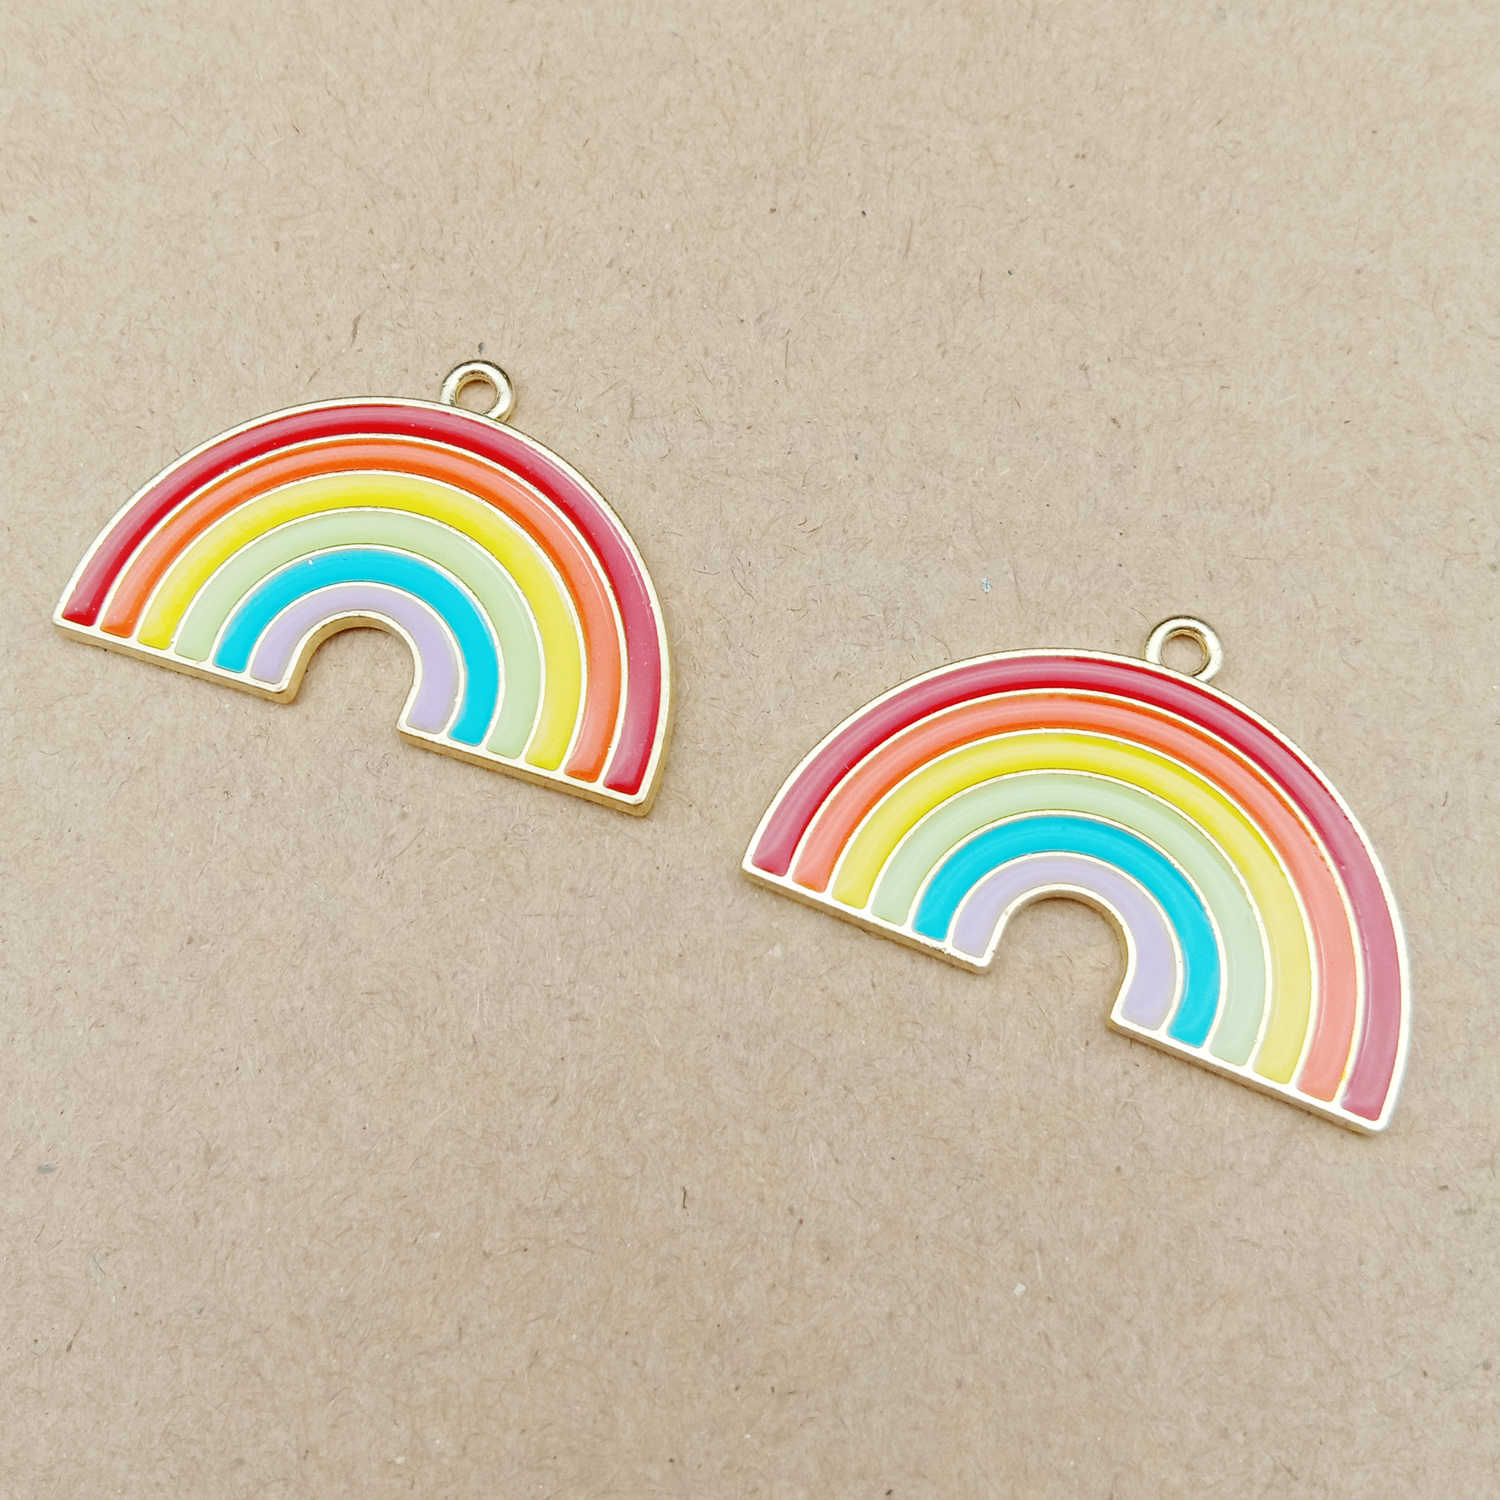 10pcs 20x31mm enamel rainbow charm for jewelry making and crafting earring pendant fashion charm bracelet charm